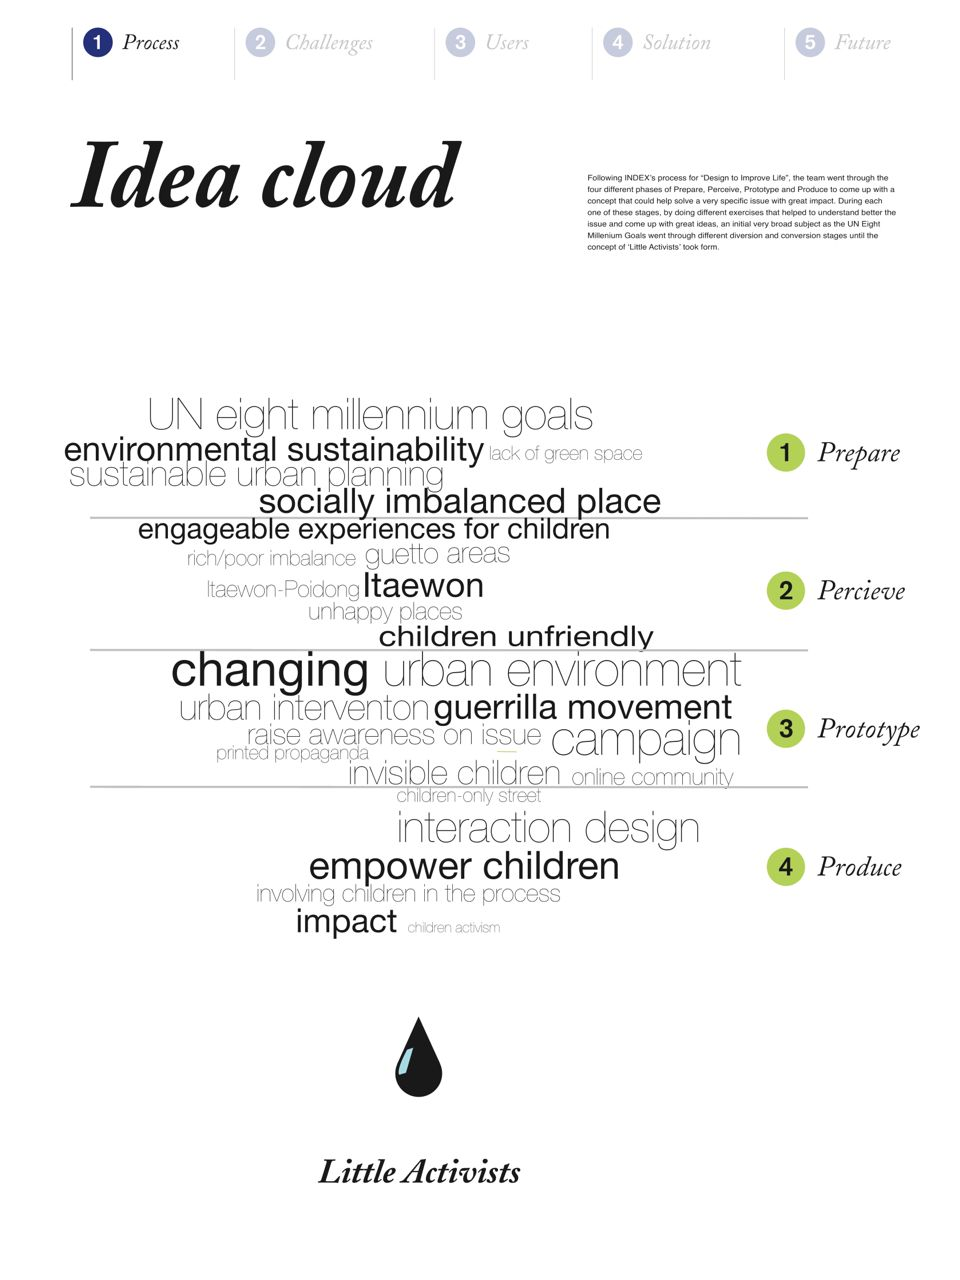 The idea cloud visualizes the process funnel.